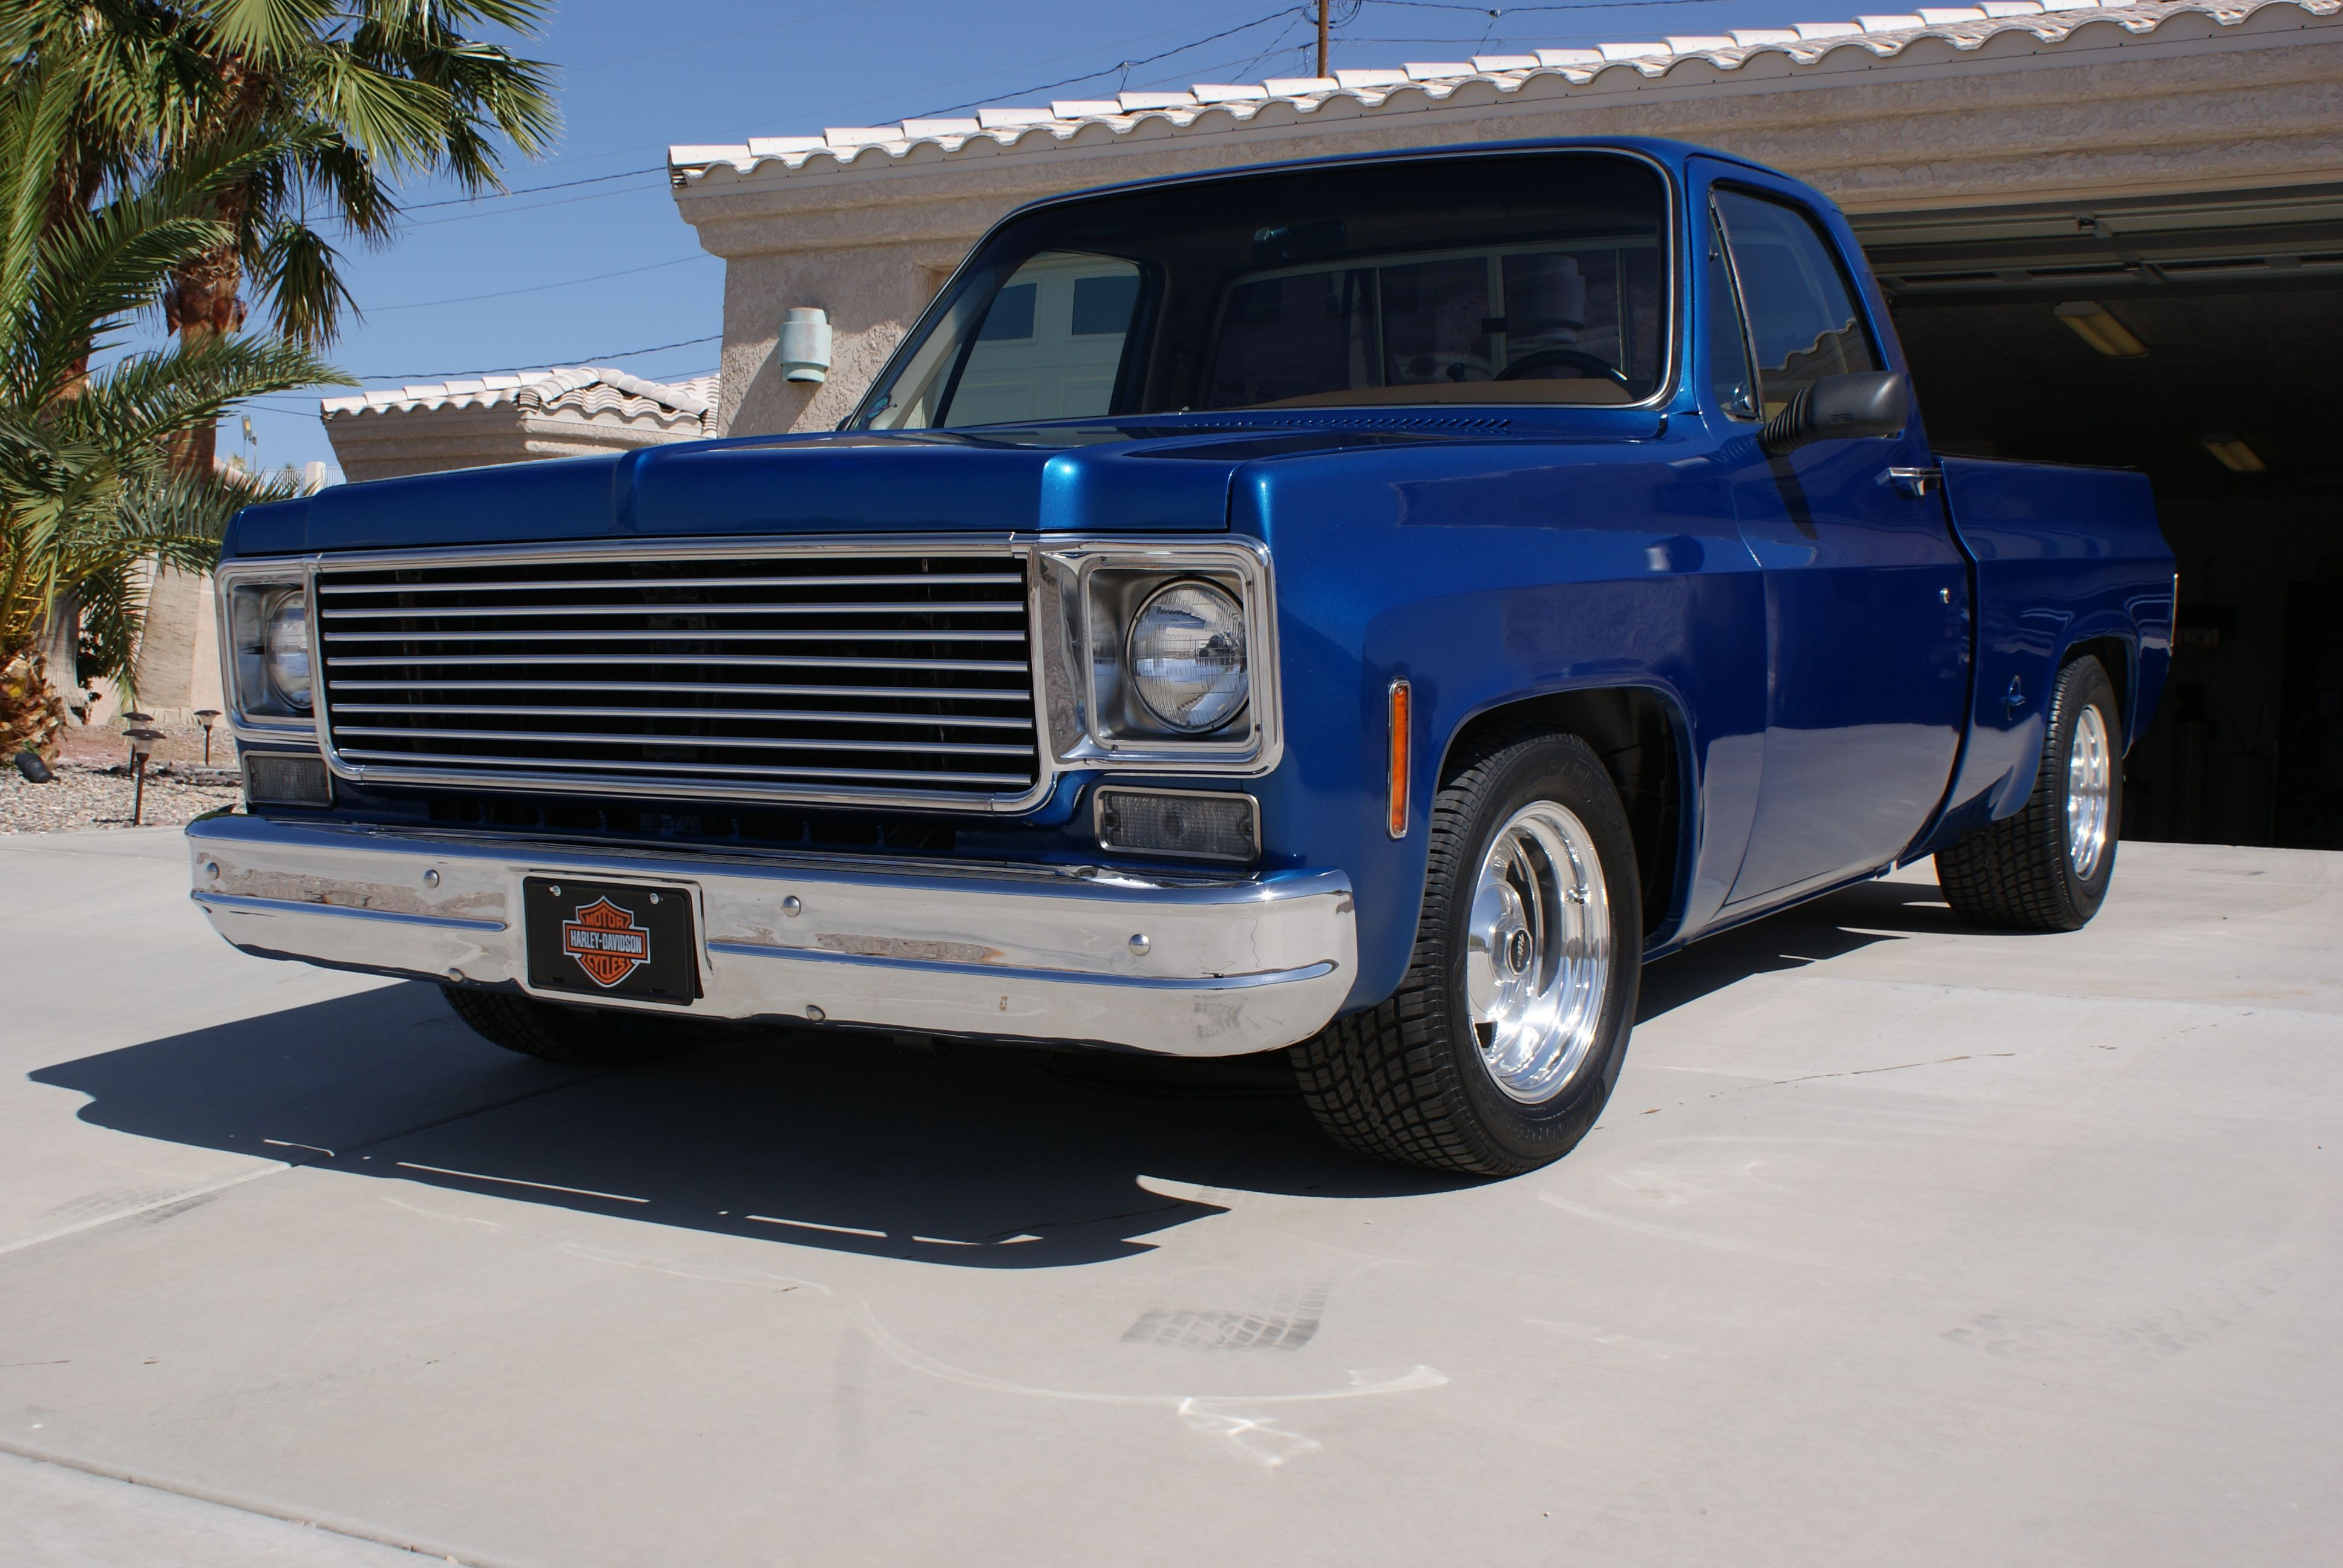 small resolution of 1978 chevy c10 autotrader classics 1978 chevrolet c10 truck blue 8 cylinder